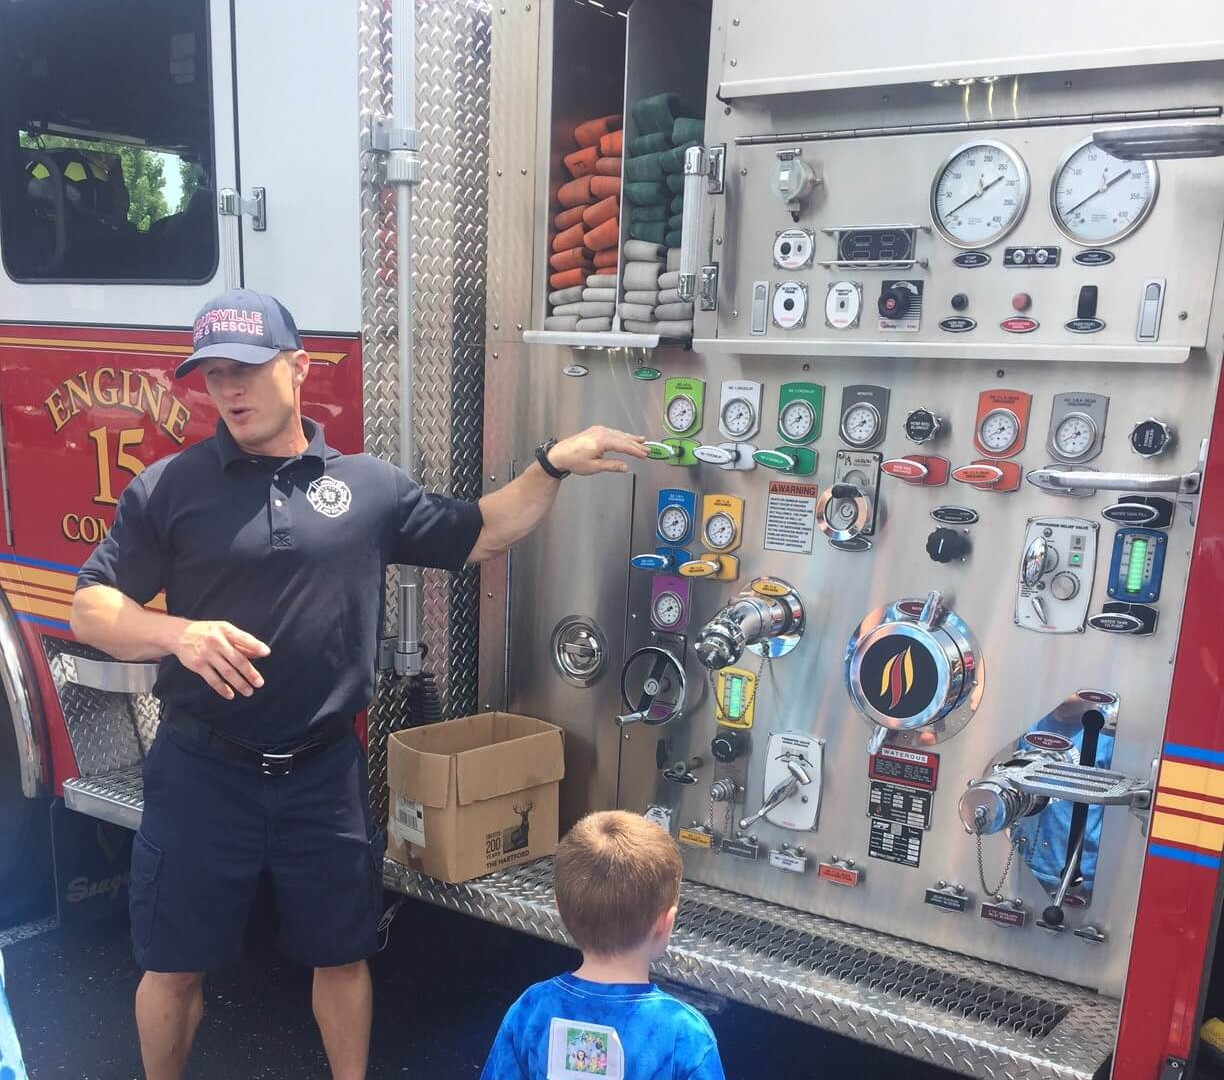 We saw a firetruck and the firefighters explained how they help people